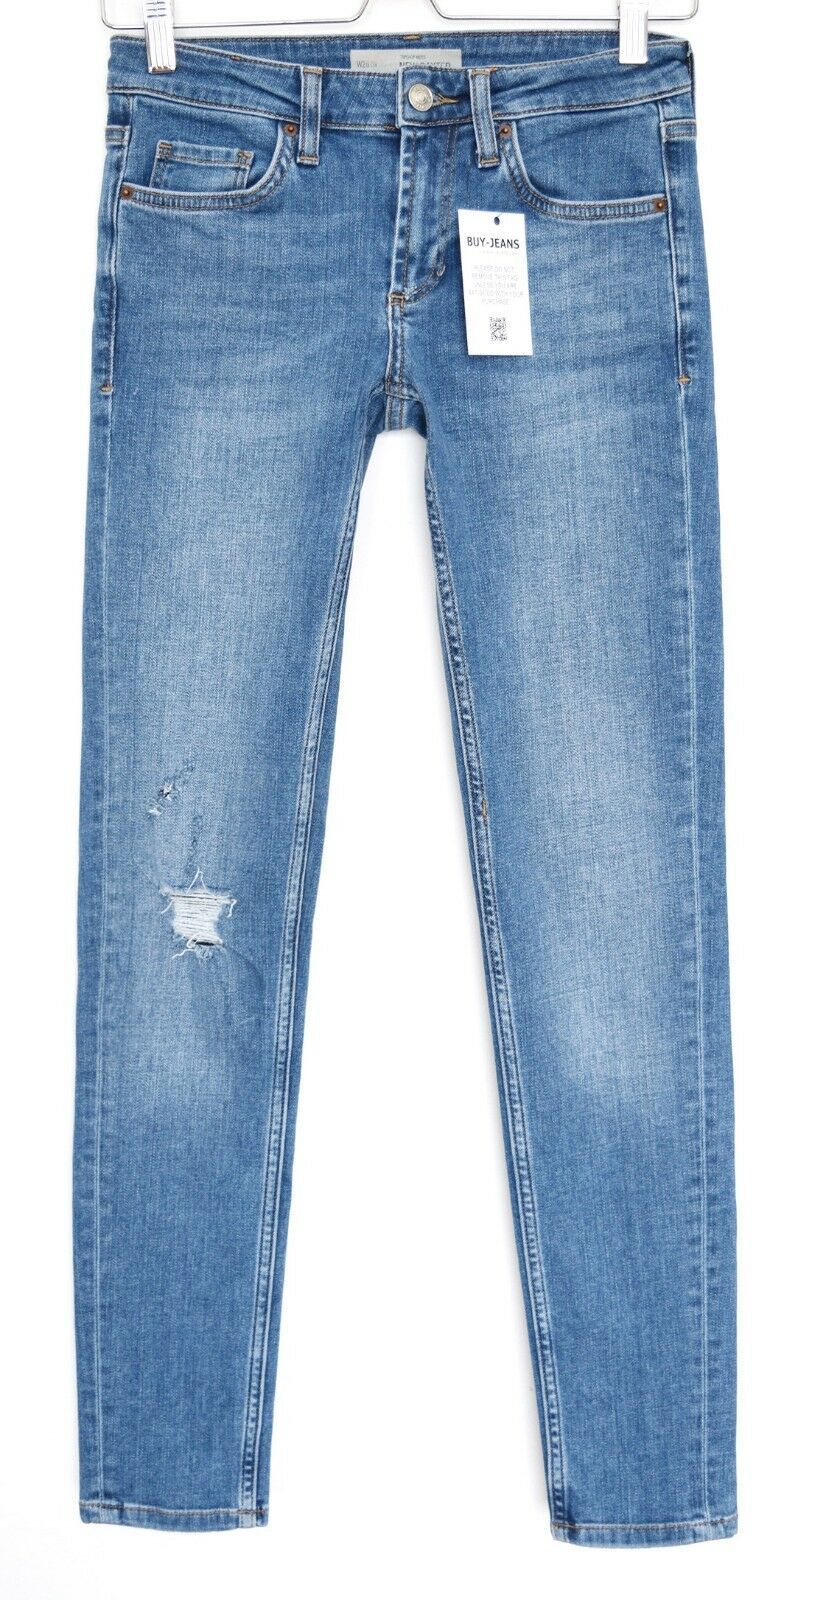 Topshop Skinny NEW BAXTER bluee Low Rise RIPPED Cropped Jeans Size 8 W26 L34